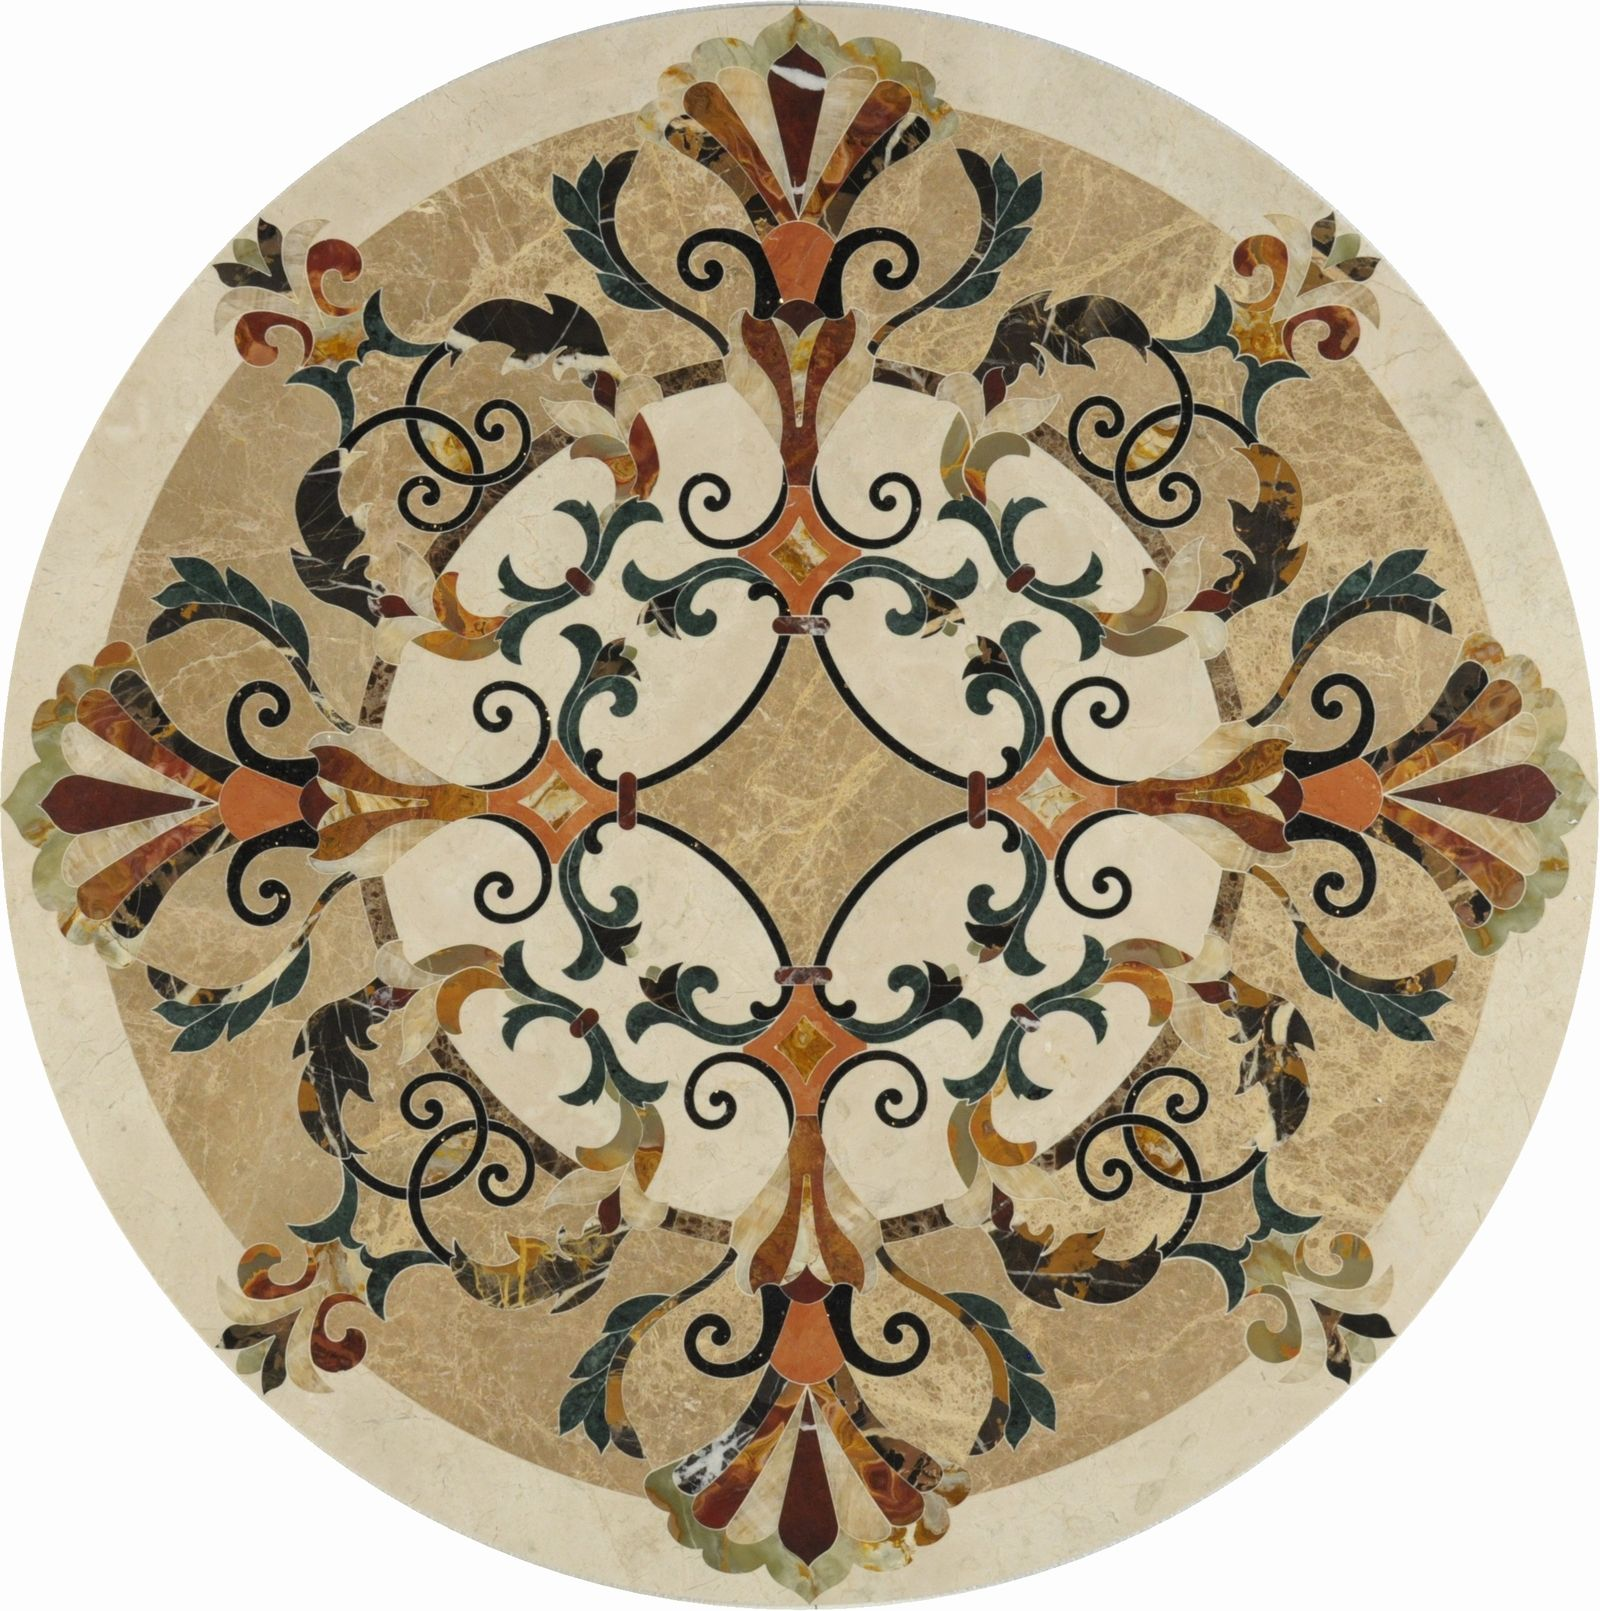 Round Mosaic Tile Patterns: Round Mosaic; Floor Medalion